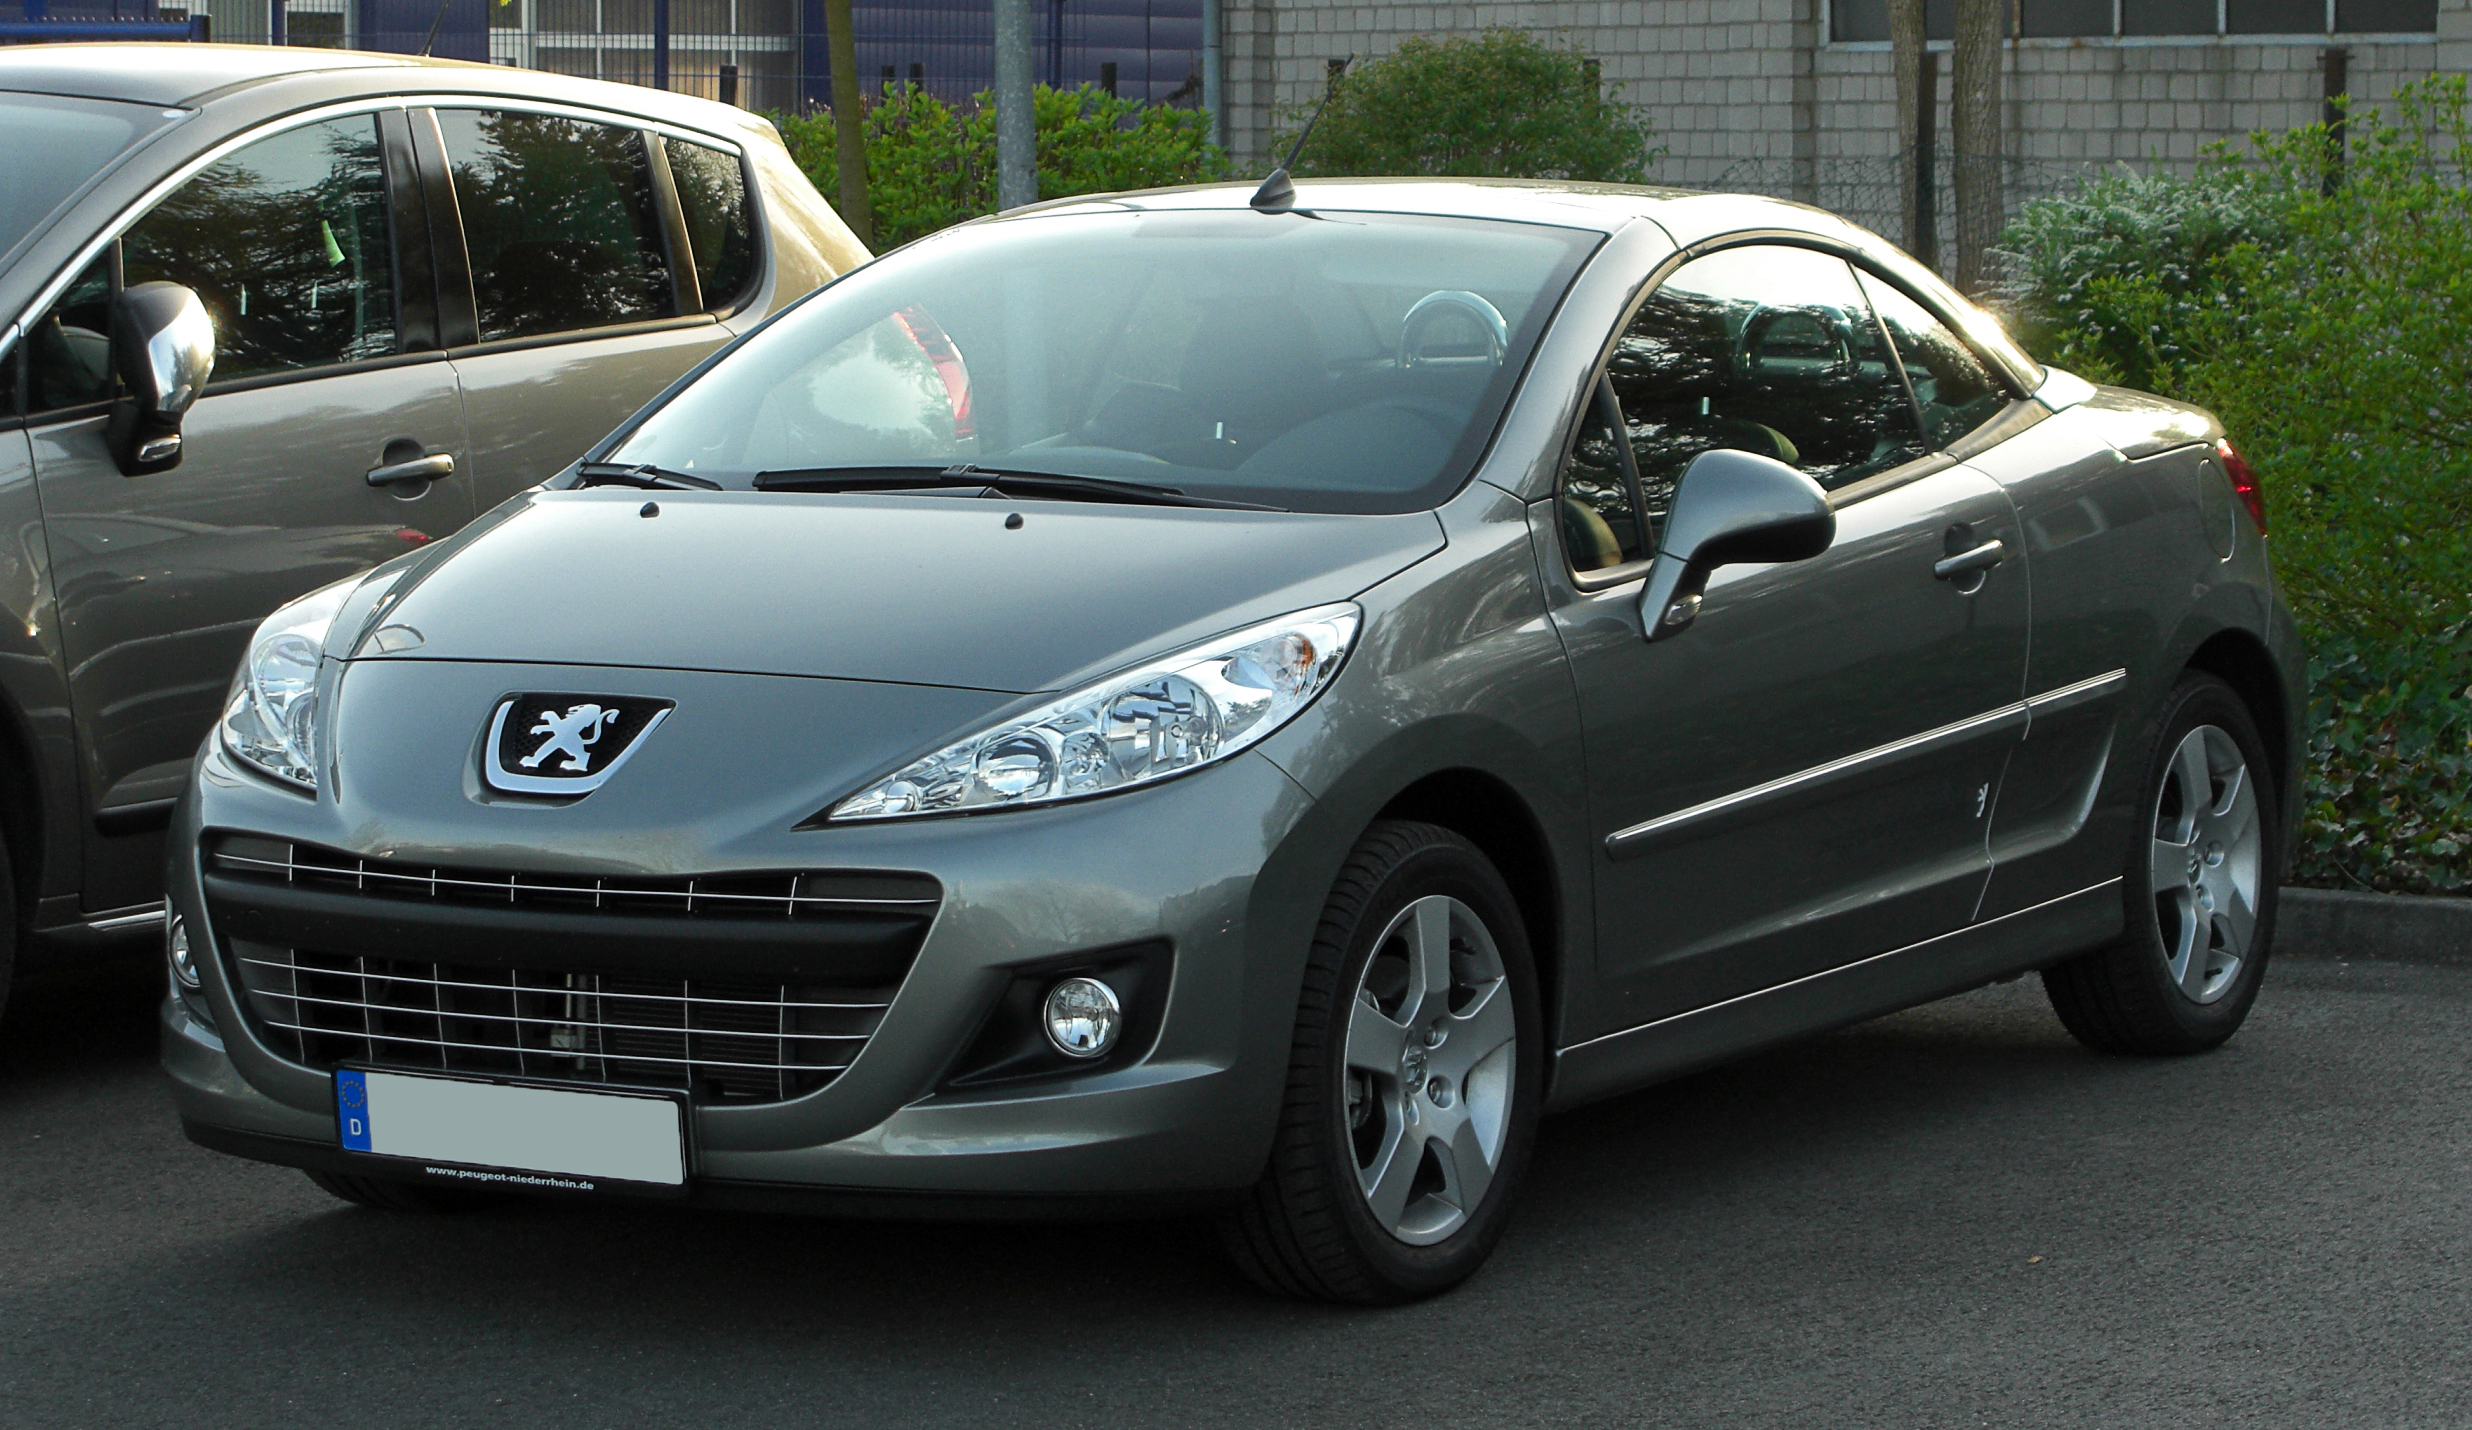 2011 peugeot 207 cc pictures information and specs auto. Black Bedroom Furniture Sets. Home Design Ideas